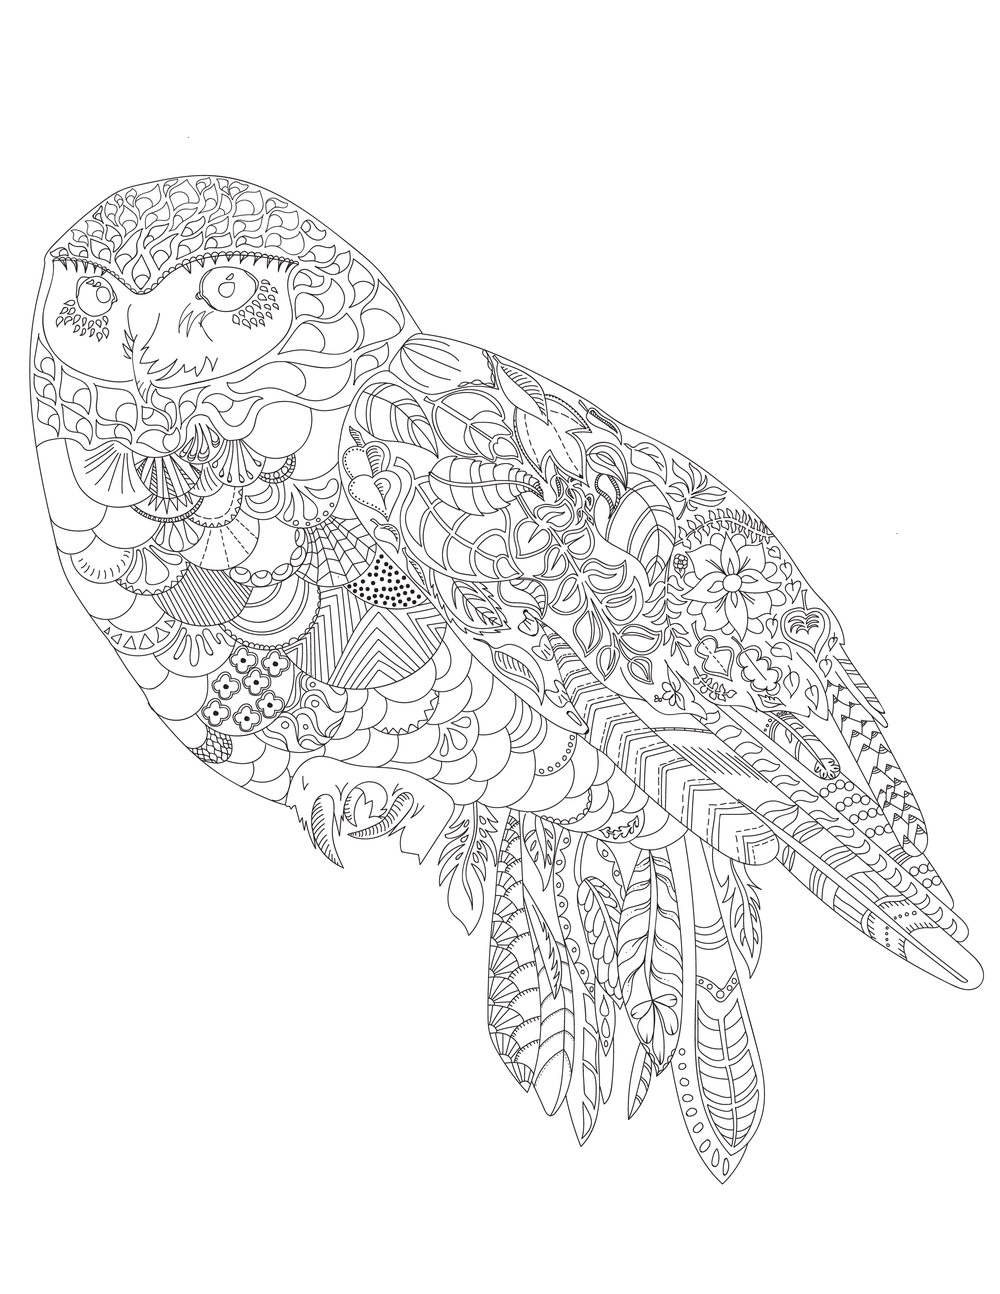 Colouring+Sheet-Owl-04.jpg